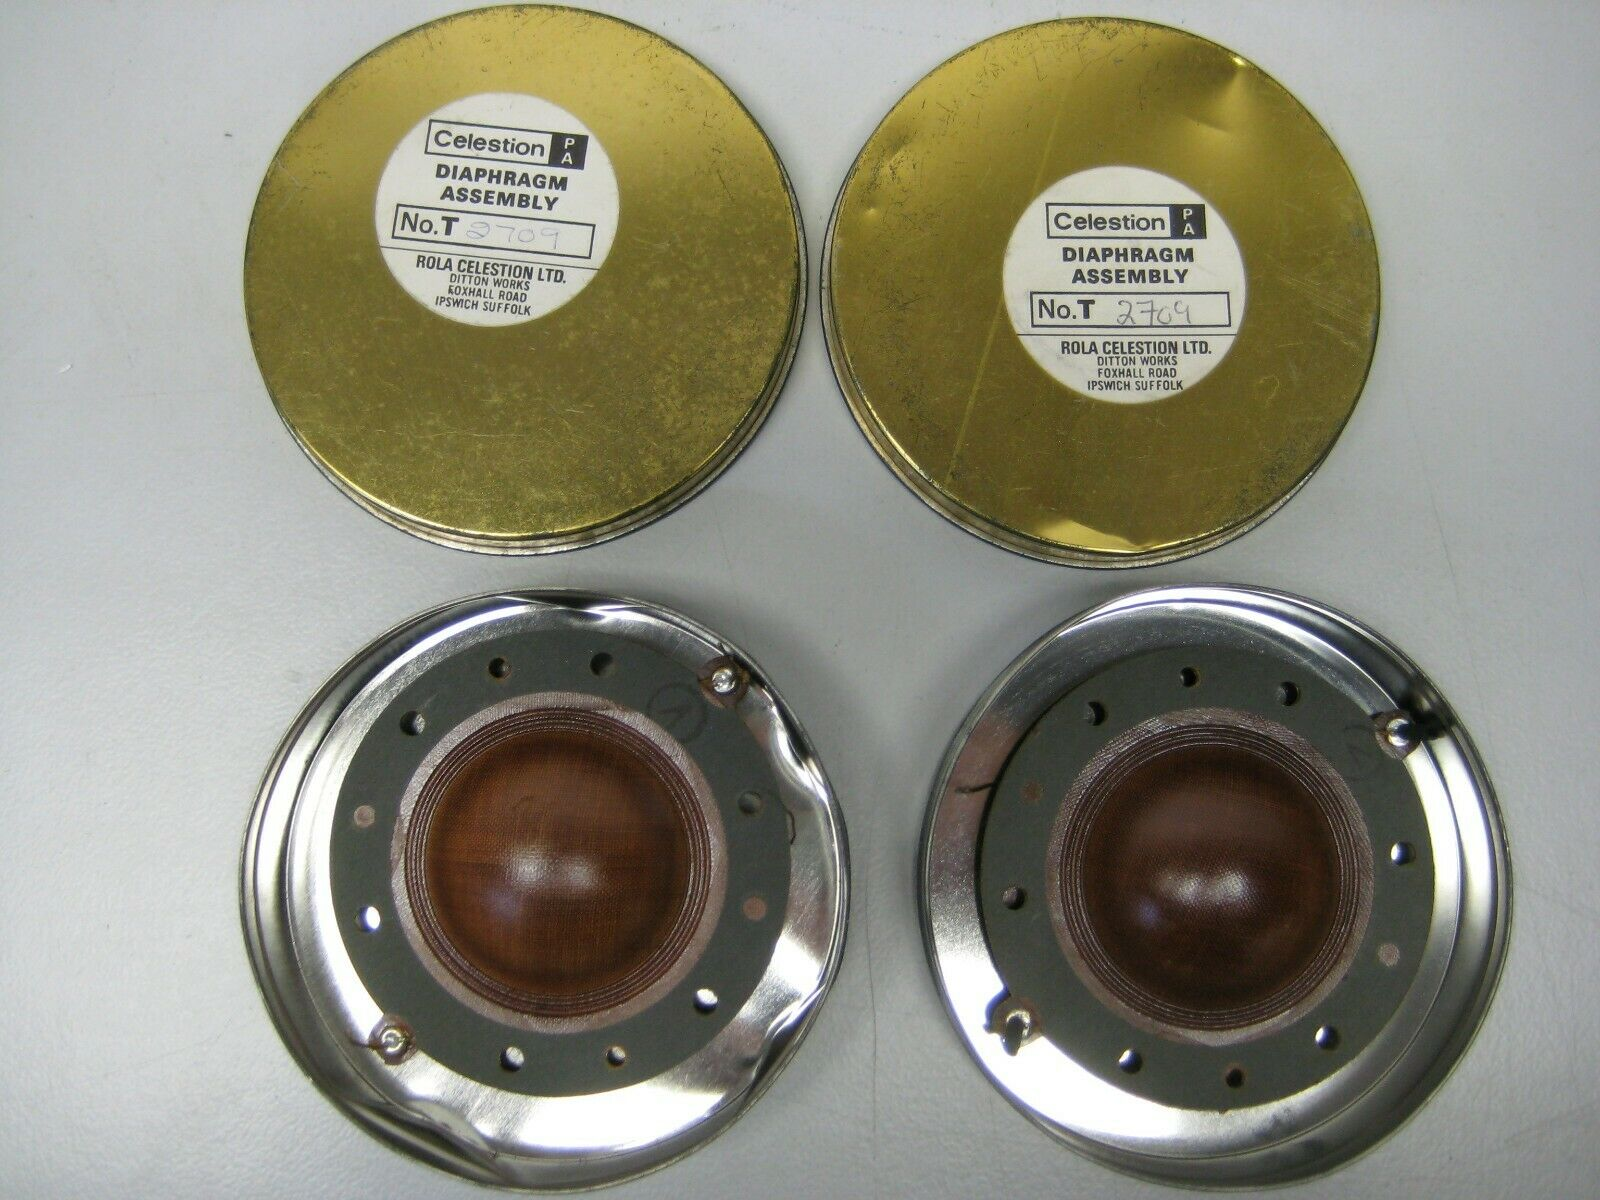 Celestion Diaphragma, No. T 2709, 2 Stk.